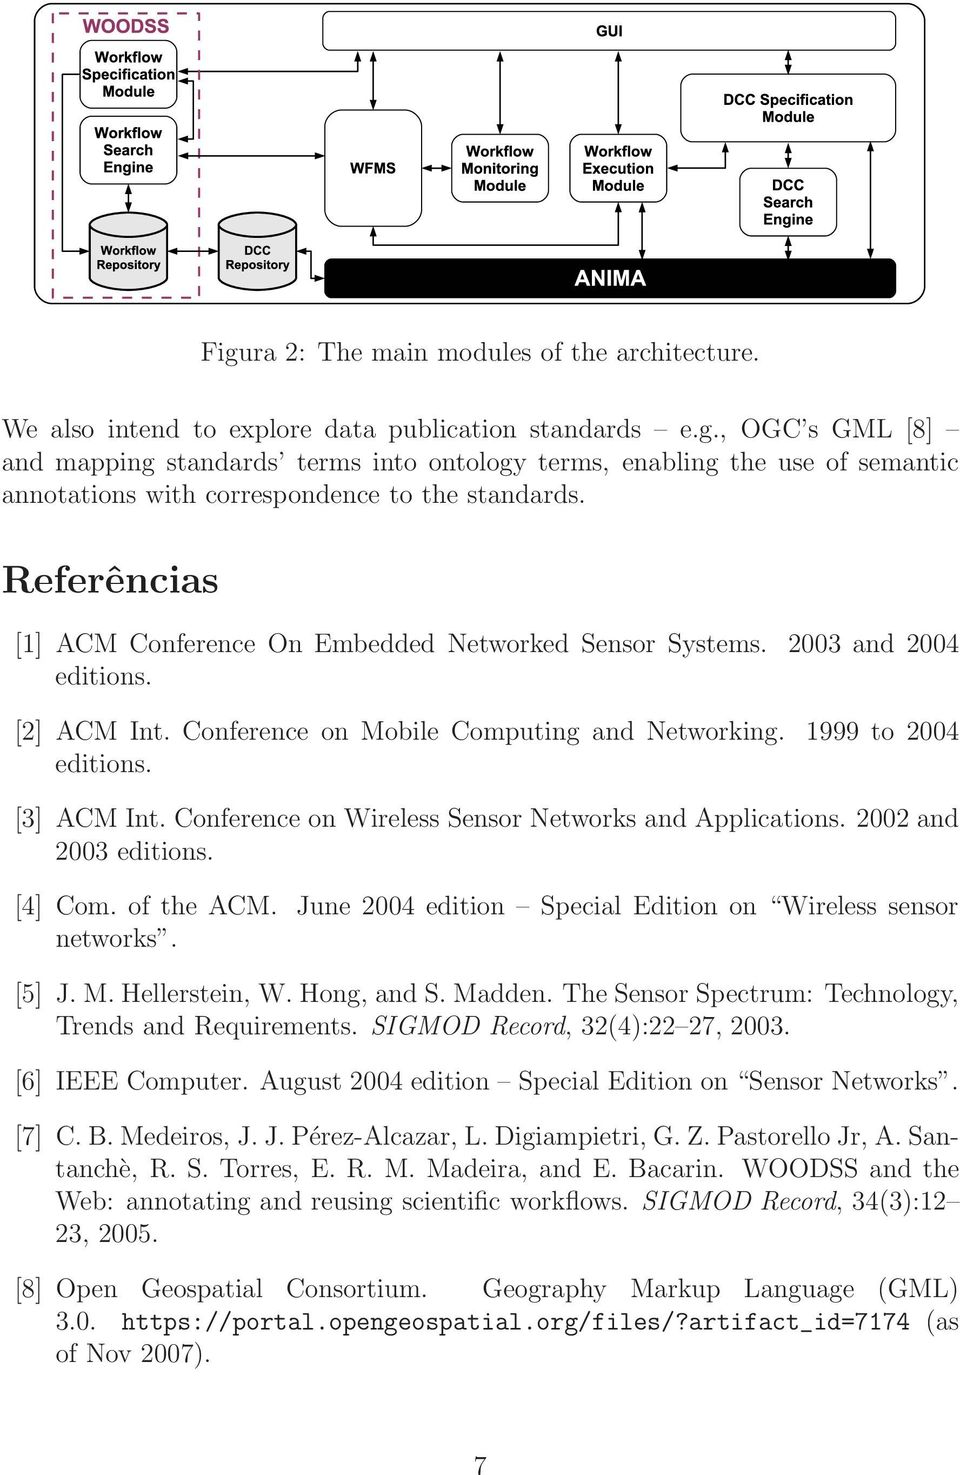 Conference on Wireless Sensor Networks and Applications. 2002 and 2003 editions. [4] Com. of the ACM. June 2004 edition Special Edition on Wireless sensor networks. [5] J. M. Hellerstein, W.